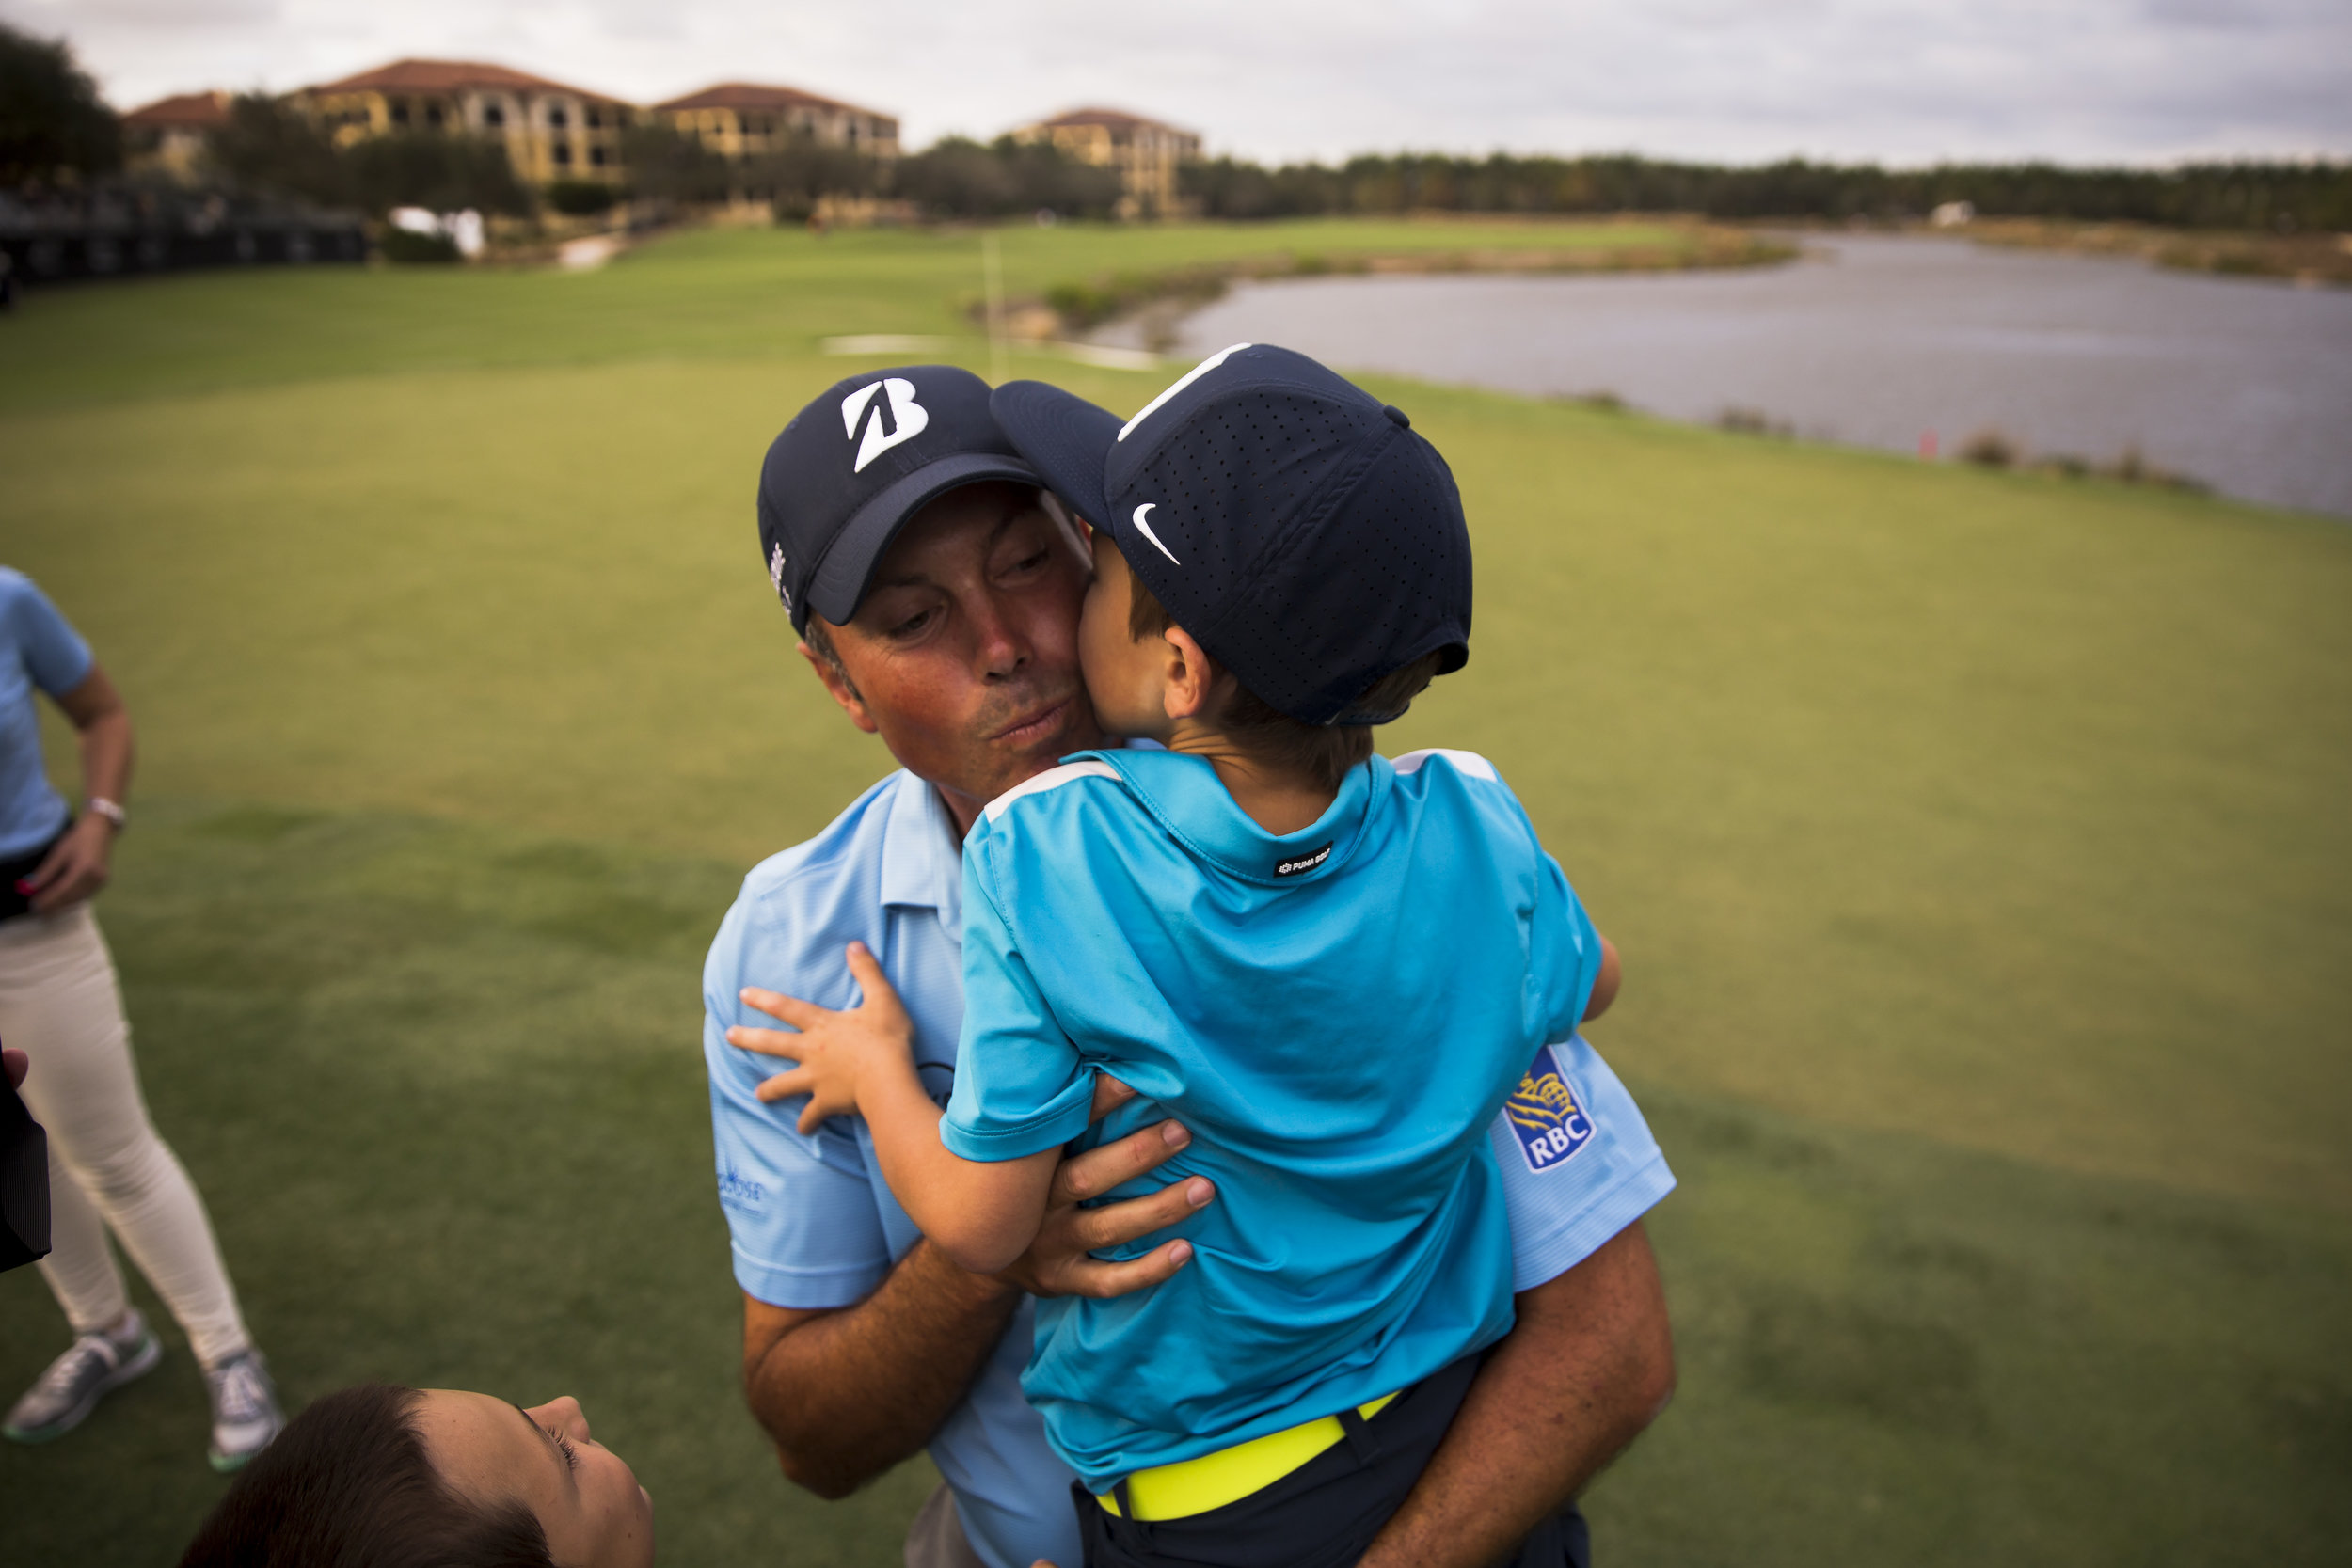 PGA Tour Pro Matt Kuchar receives a kiss from his son Carson Kuchar, 7, after winning the Franklin Templeton Shootout with teammate Harris English, not pictured,at Tiburón Golf Club at The Ritz-Carlton Golf Resort Saturday, Dec. 10, 2016 in Naples, Fla. The duo finished with a score of 28-under par.